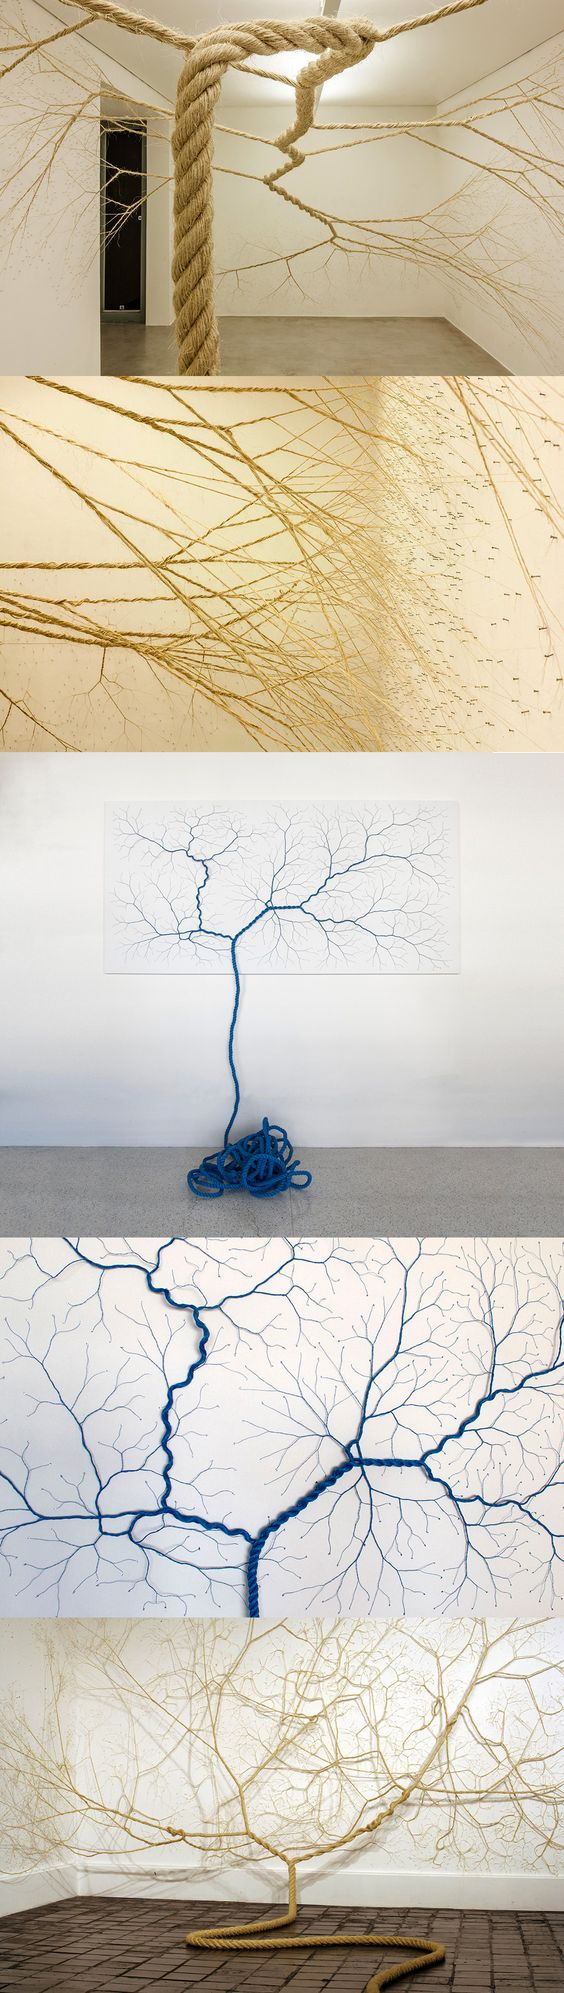 Untwisted Ropes Tacked to Gallery Walls Appear to Sprout like Trees http://www.thisiscolossal.com/2015/06/rope-installations-mello-landini/: